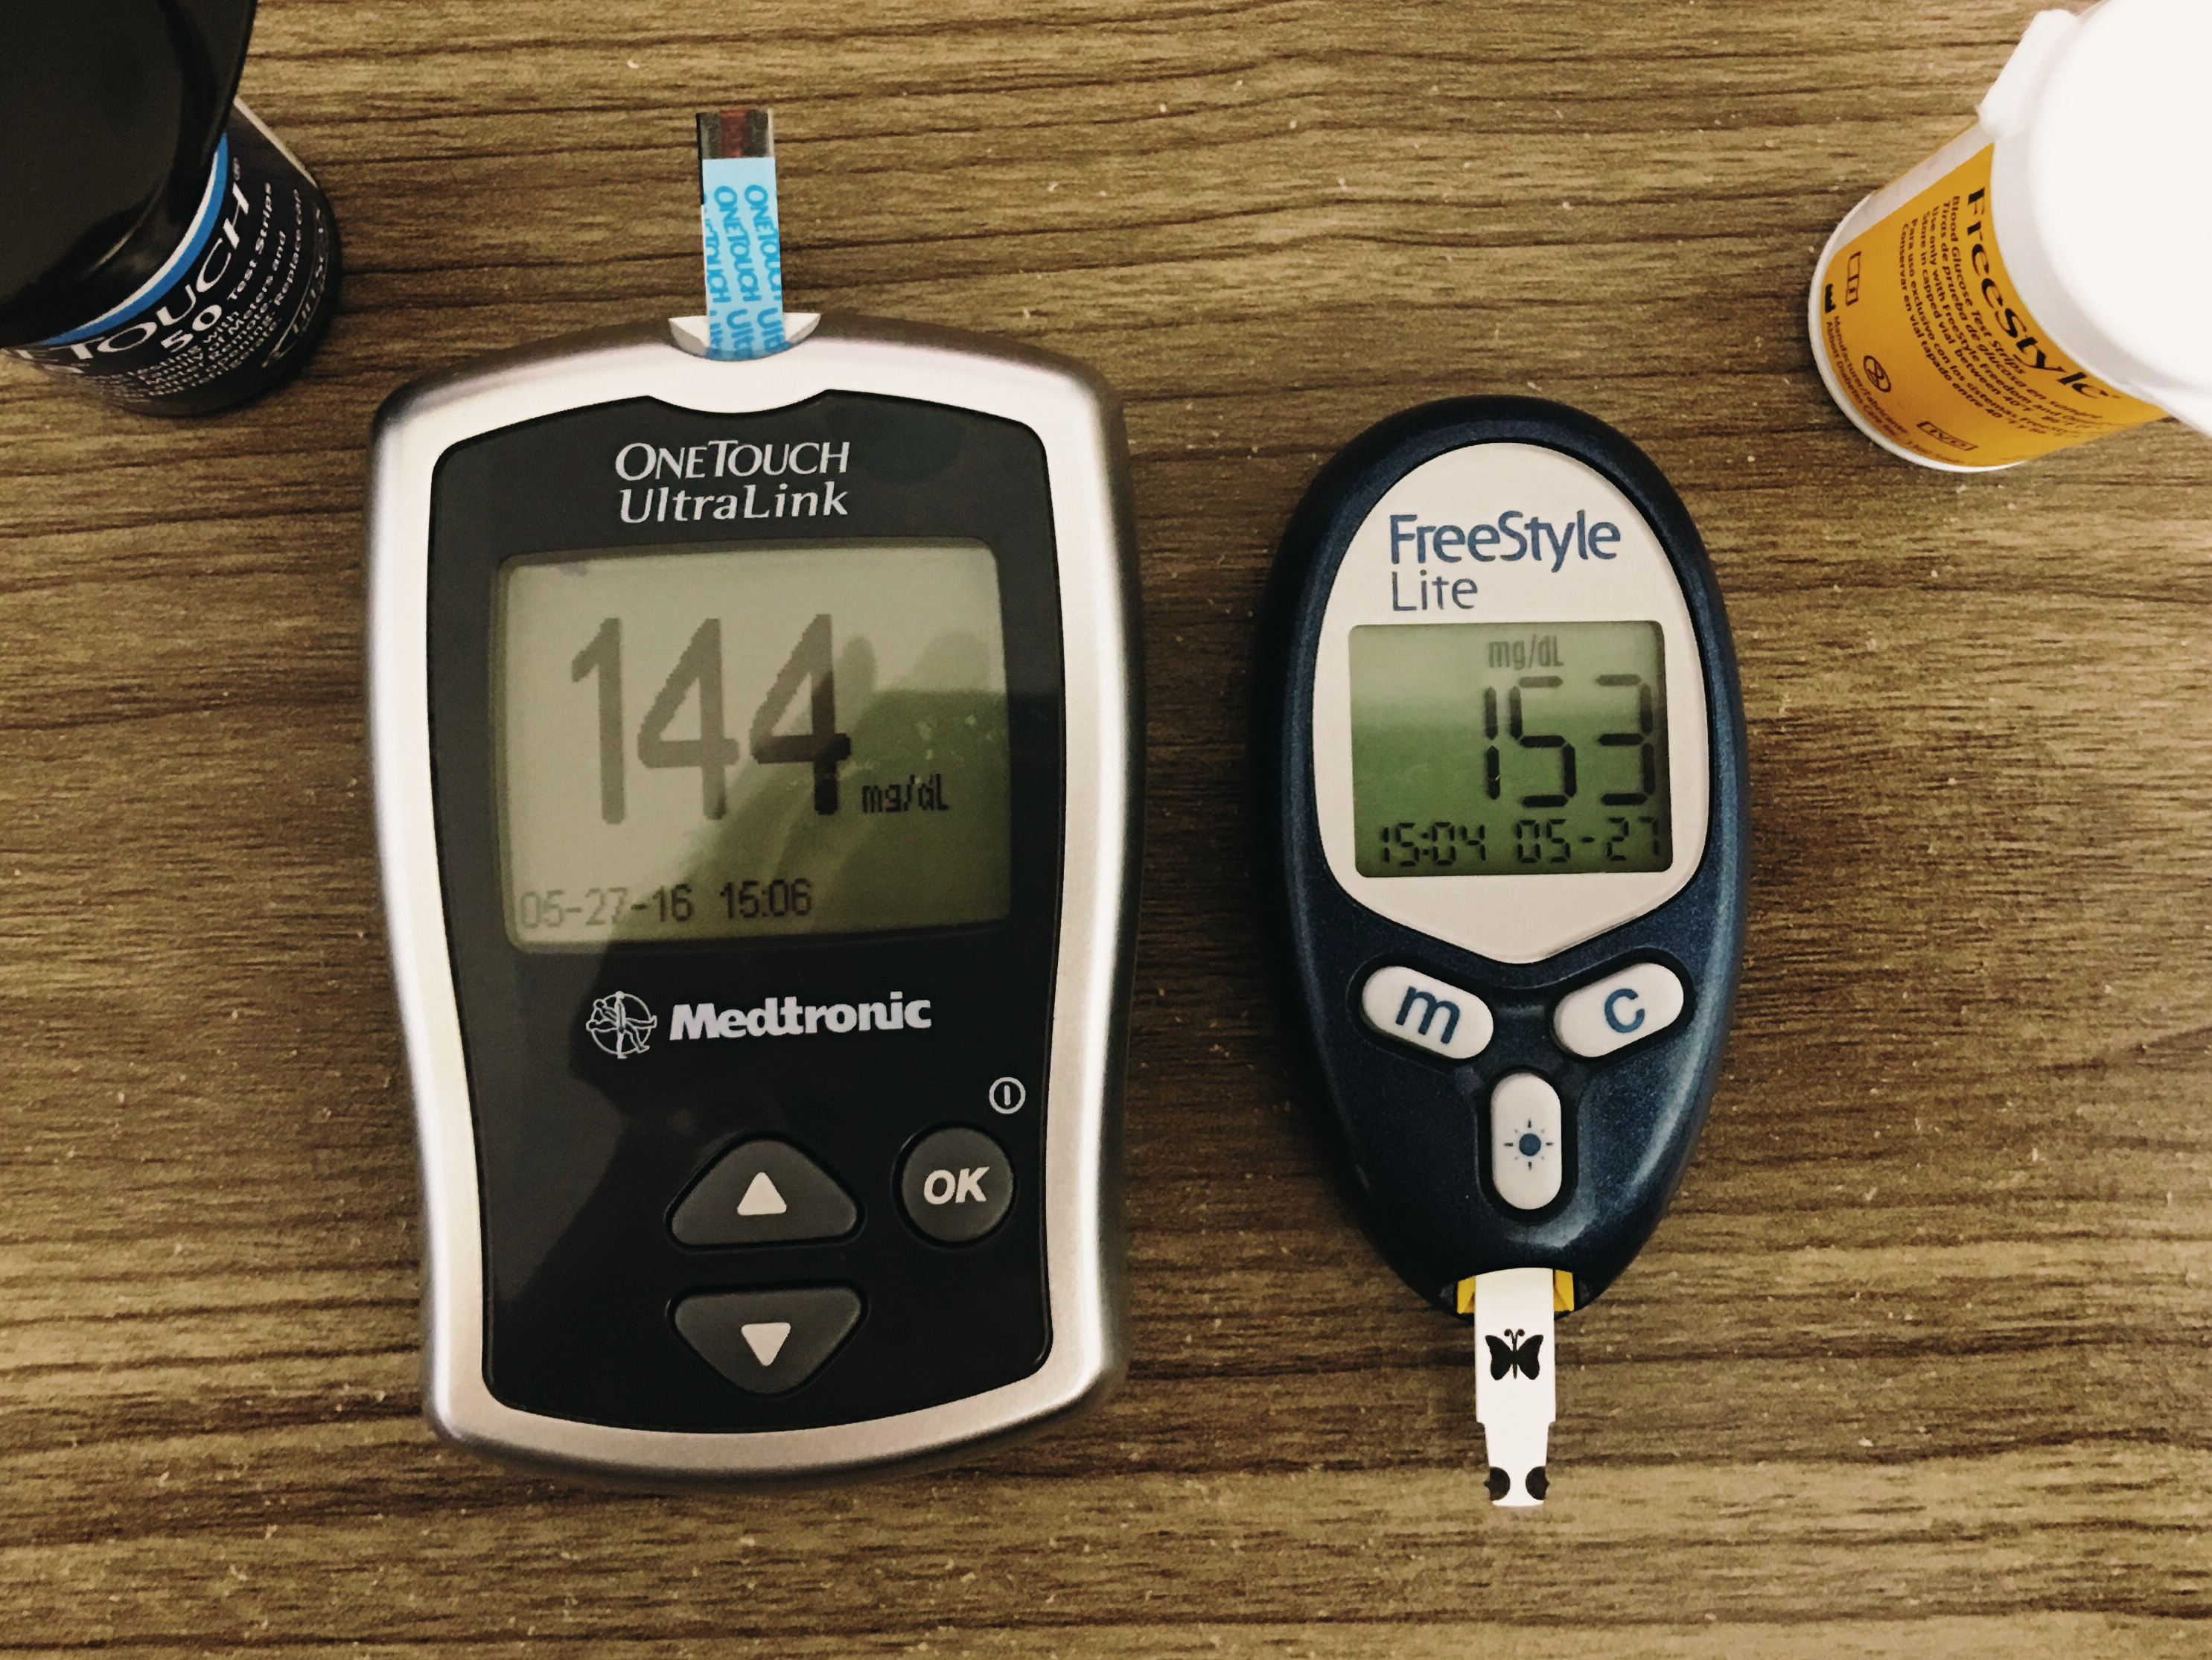 blood glucose meter accuracy - blood glucose meter readings - diabetes monitor - diabetes blood glucose meter - diabetes glucometer - glucometer accuracy - diabetes meter accuracy